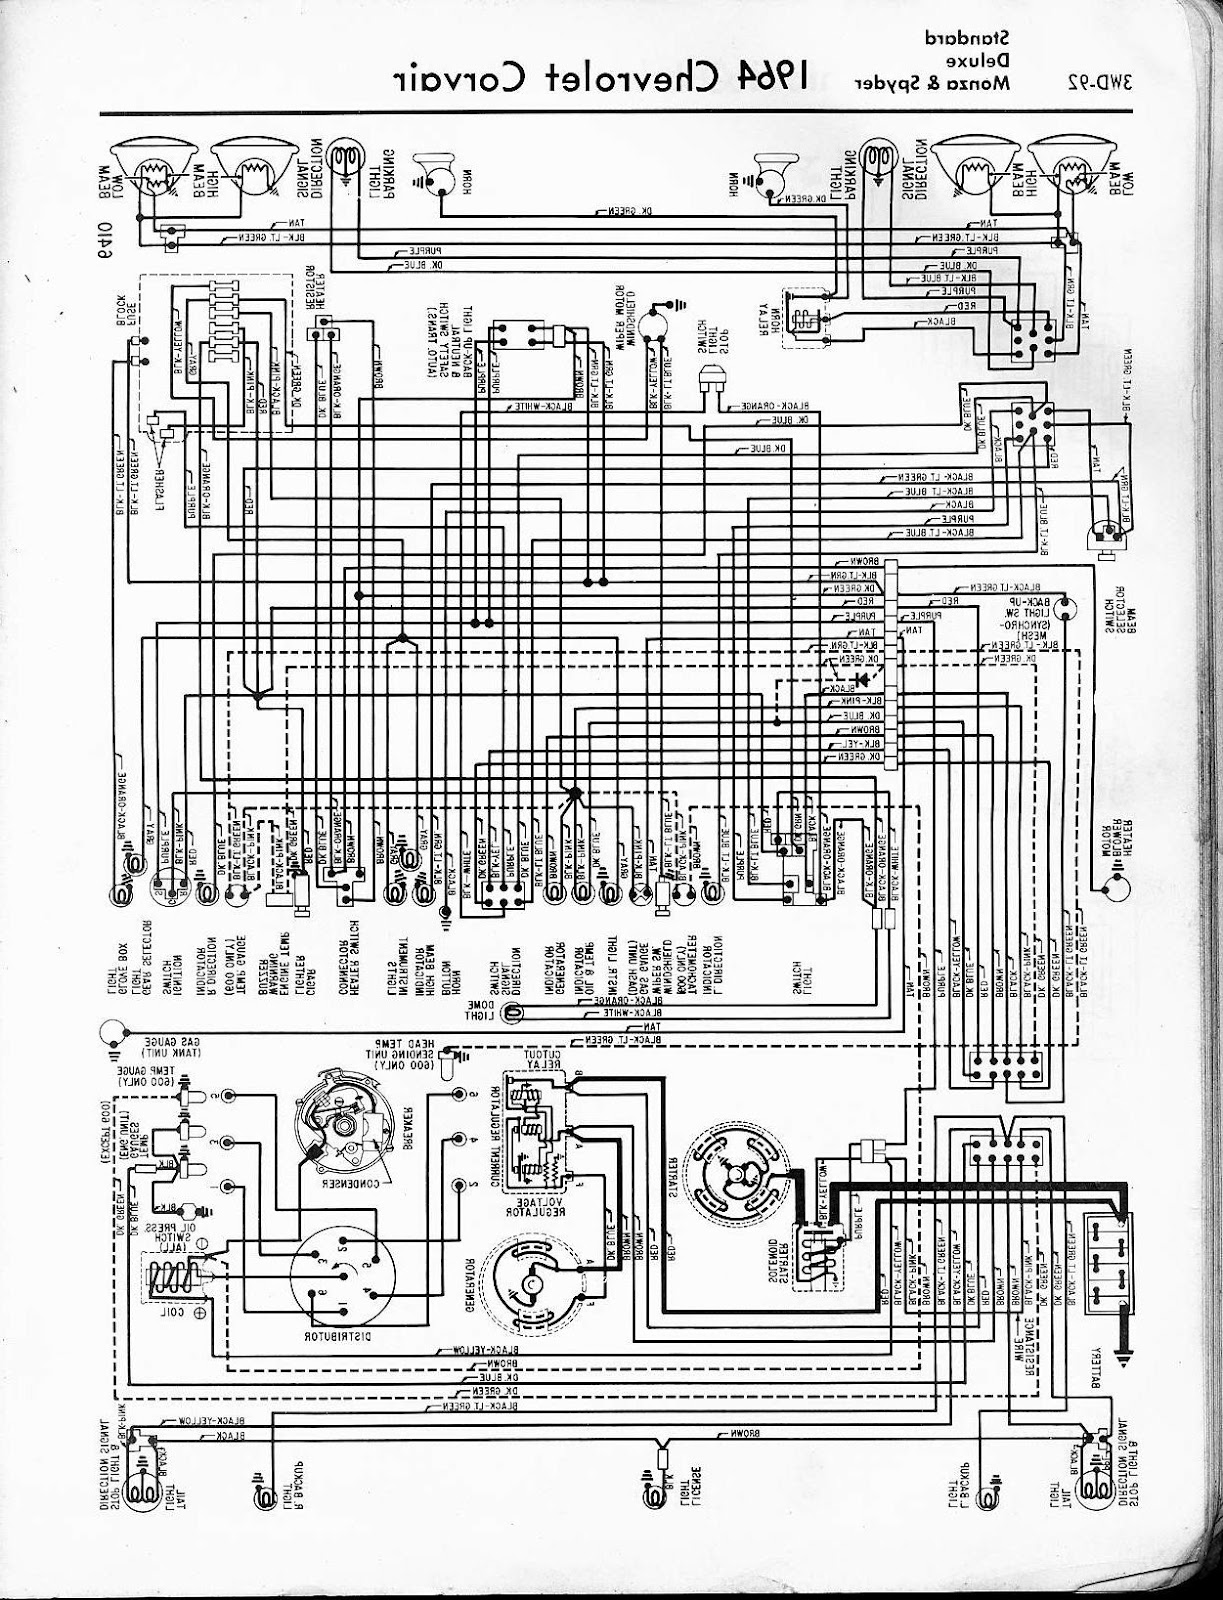 This Wiring Diagram Cover All on 1955 Chevy Truck Wiring Diagram